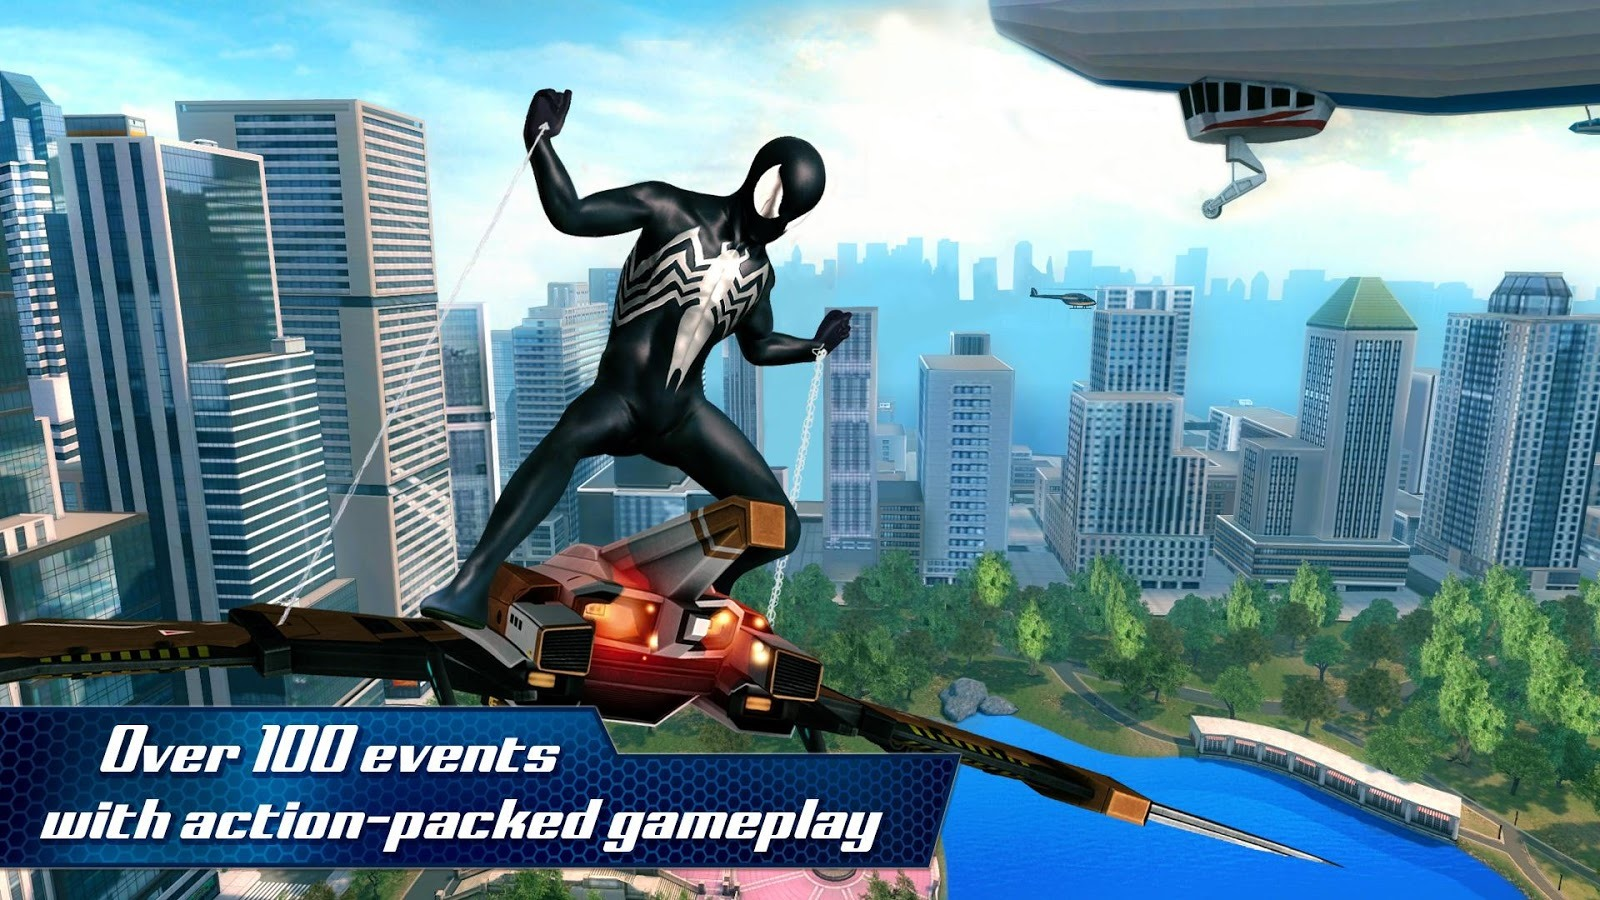 New Game] The Amazing Spider-Man 2 Swings Into The Play Store With ...